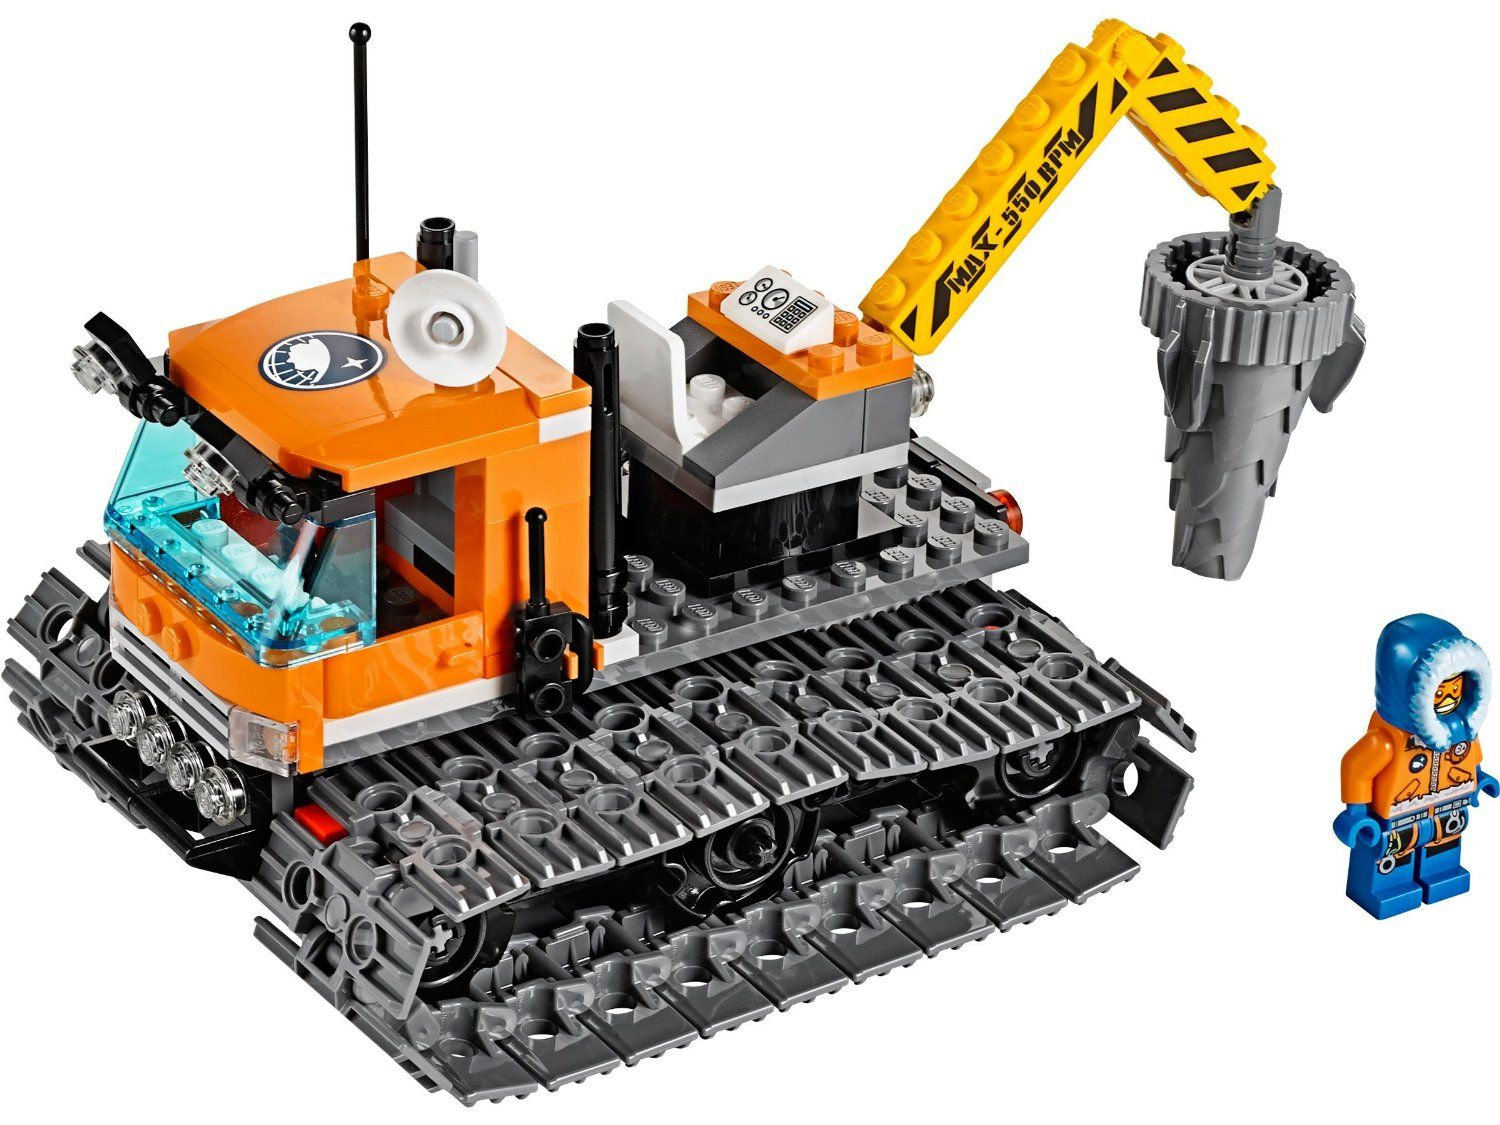 Pin lego 60032 city the lego summer wave in official images on - Lego City 60036 Arctic Base Camp Tracked Exploration Vehicle Features Massive Tracks Huge